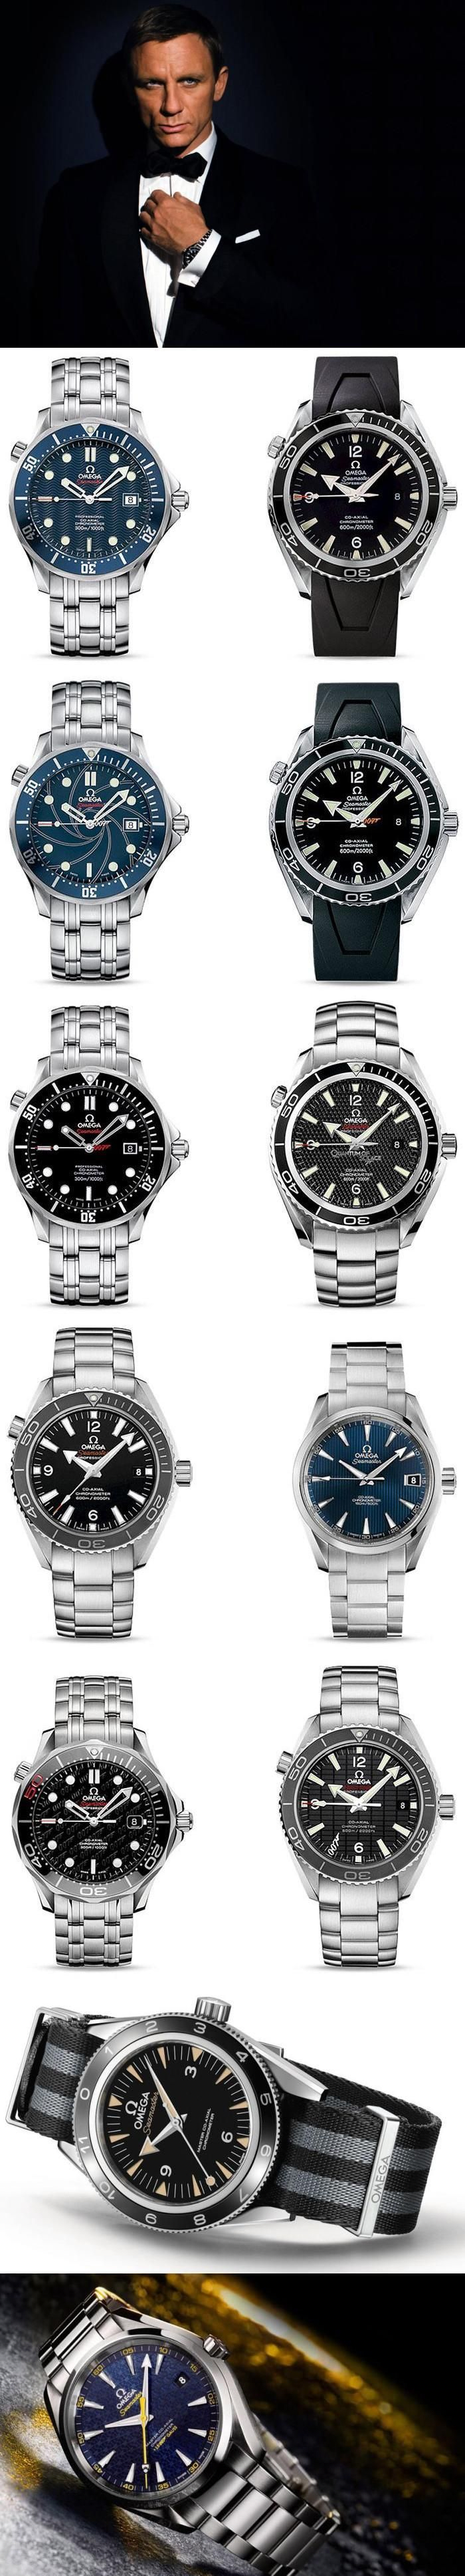 Omega 007 James Bond Watches Guide - Daniel Craig Era